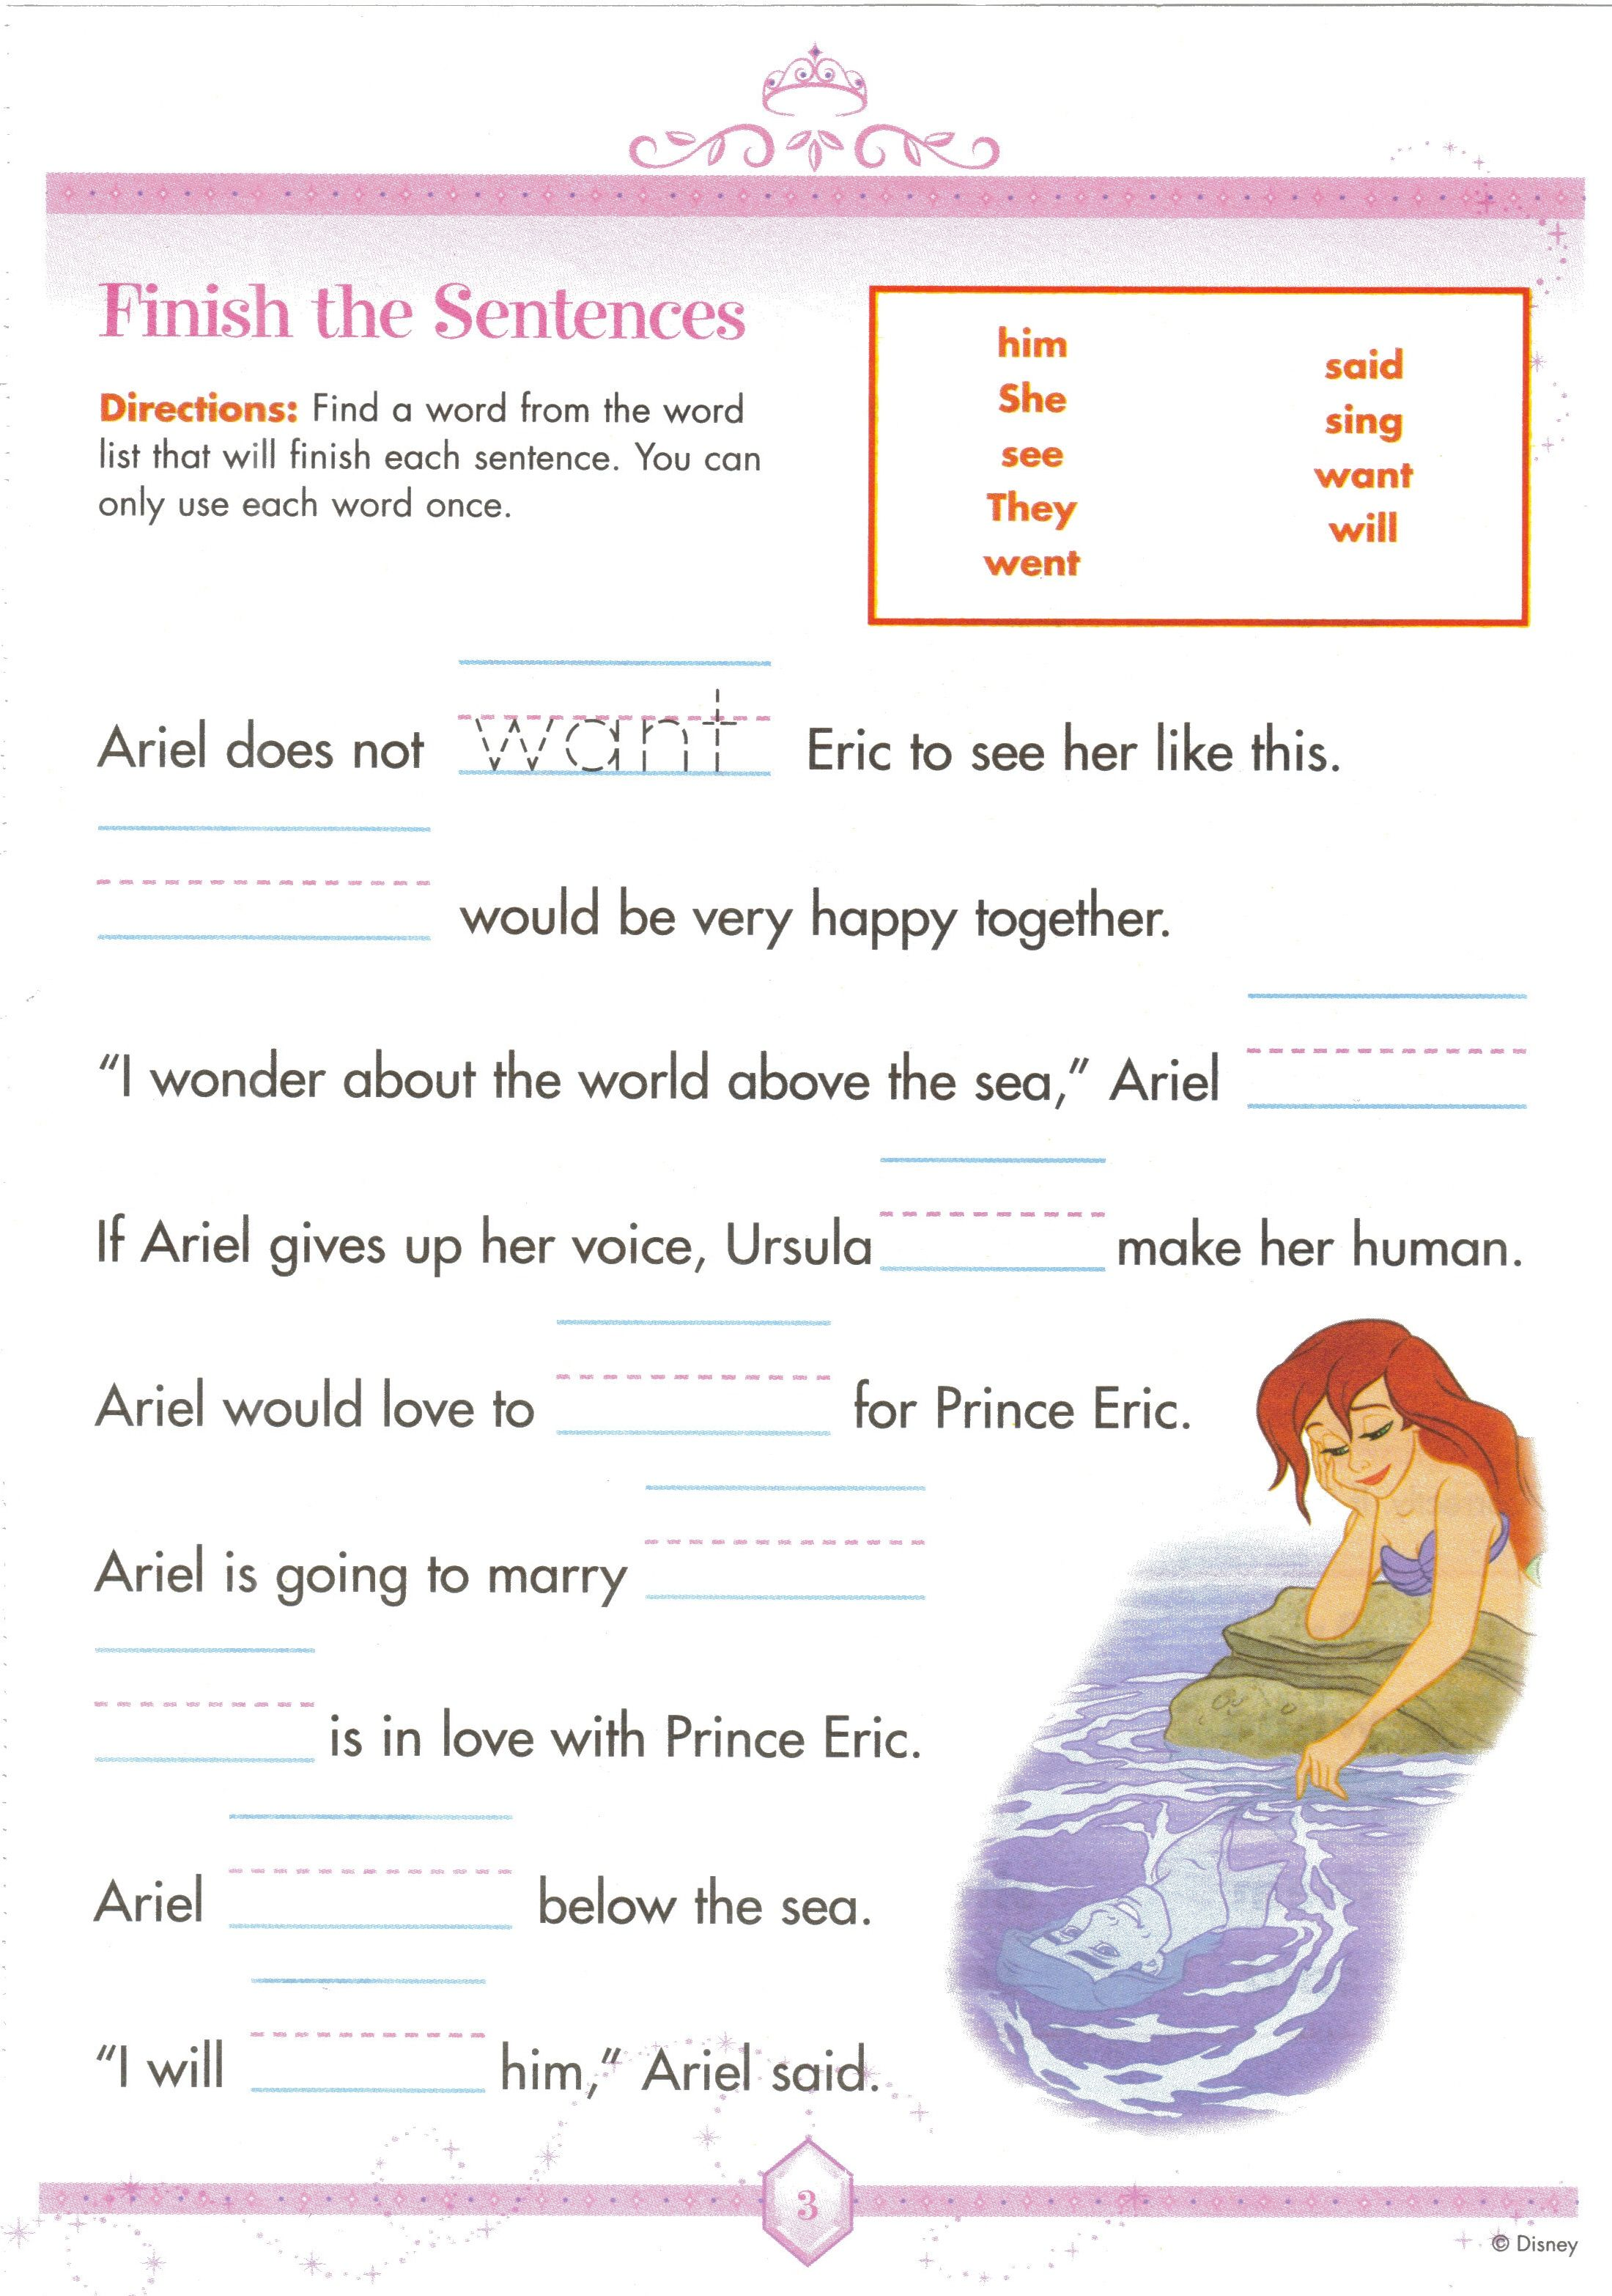 Weirdmailus  Splendid  Images About Worksheets On Pinterest  Fun Facts For Kids  With Outstanding  Images About Worksheets On Pinterest  Fun Facts For Kids Earth Day Worksheets And Jungles With Astonishing Nouns Ending In Y Worksheet Also Reading Volume Worksheet In Addition Sentence Structure Worksheets Th Grade And Multiplication Mosaics Worksheets As Well As Kindergarten Common Core Worksheets Additionally Worksheet Stative Verbs From Pinterestcom With Weirdmailus  Outstanding  Images About Worksheets On Pinterest  Fun Facts For Kids  With Astonishing  Images About Worksheets On Pinterest  Fun Facts For Kids Earth Day Worksheets And Jungles And Splendid Nouns Ending In Y Worksheet Also Reading Volume Worksheet In Addition Sentence Structure Worksheets Th Grade From Pinterestcom